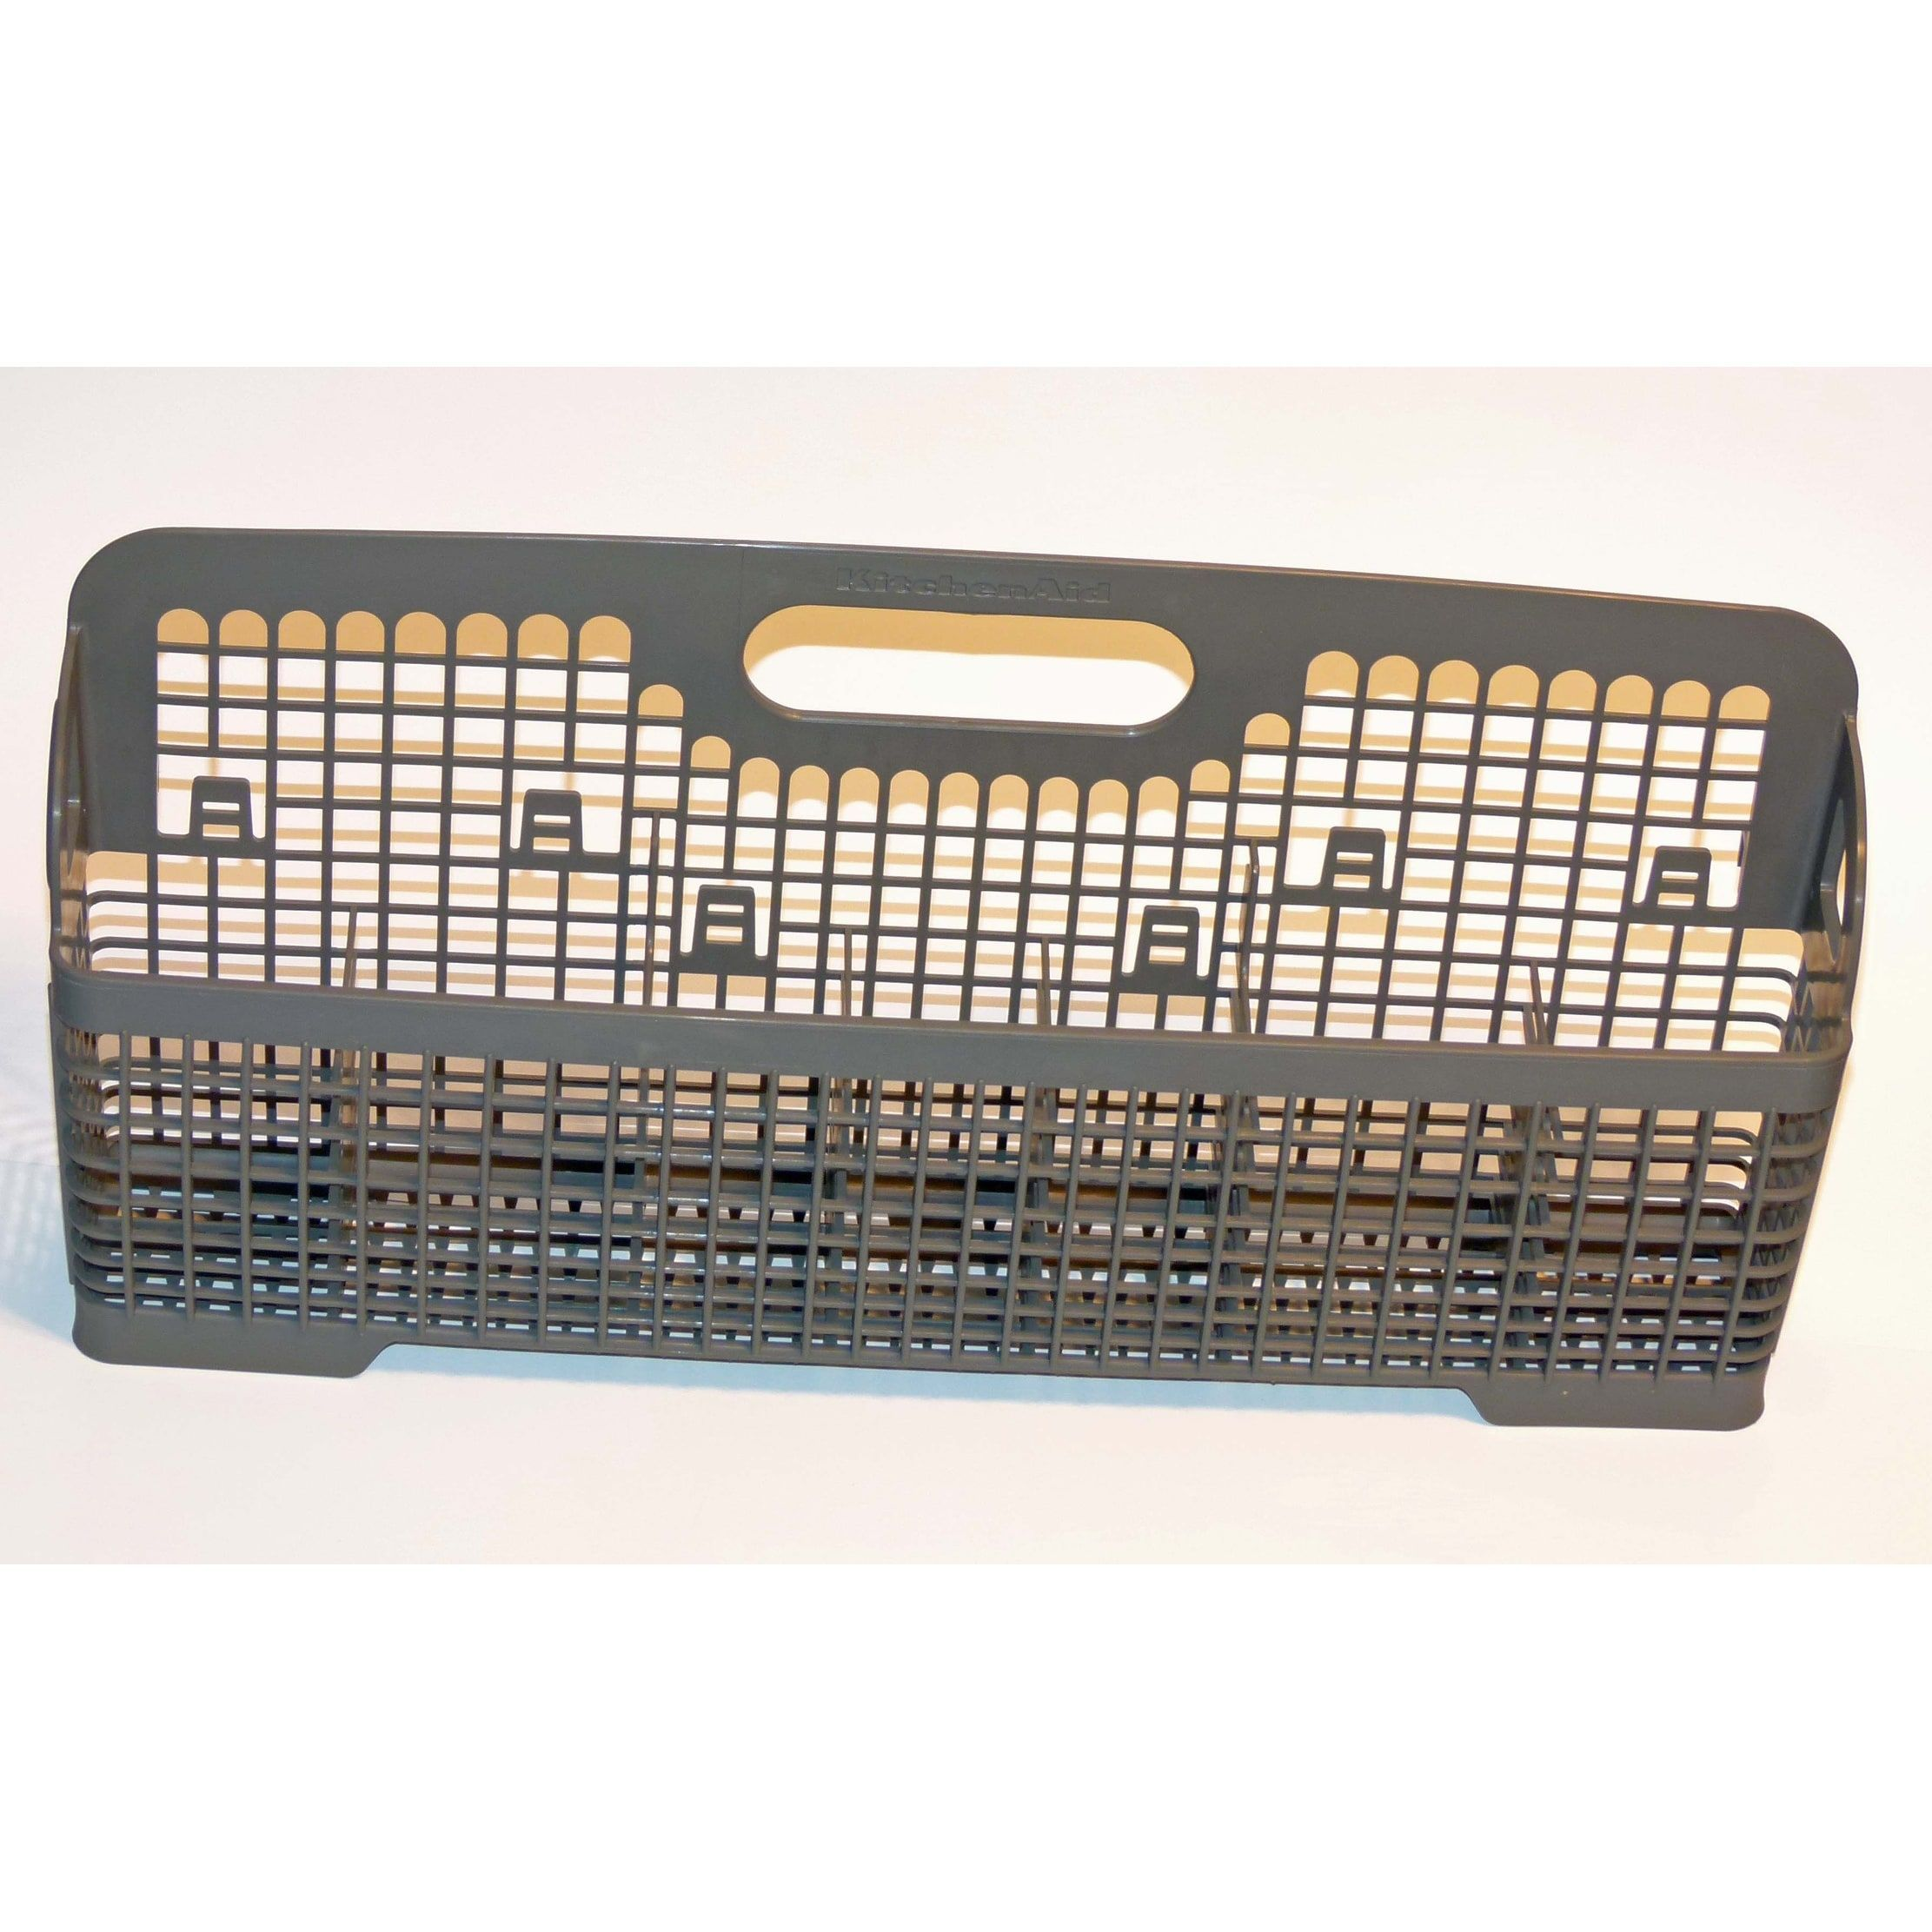 Oem Kitchenaid Dishwasher Silverware Utensil Basket Bin Originally Shipped With Kudi01flbl6 Kudi01dlwh1 Kudi02crbl3